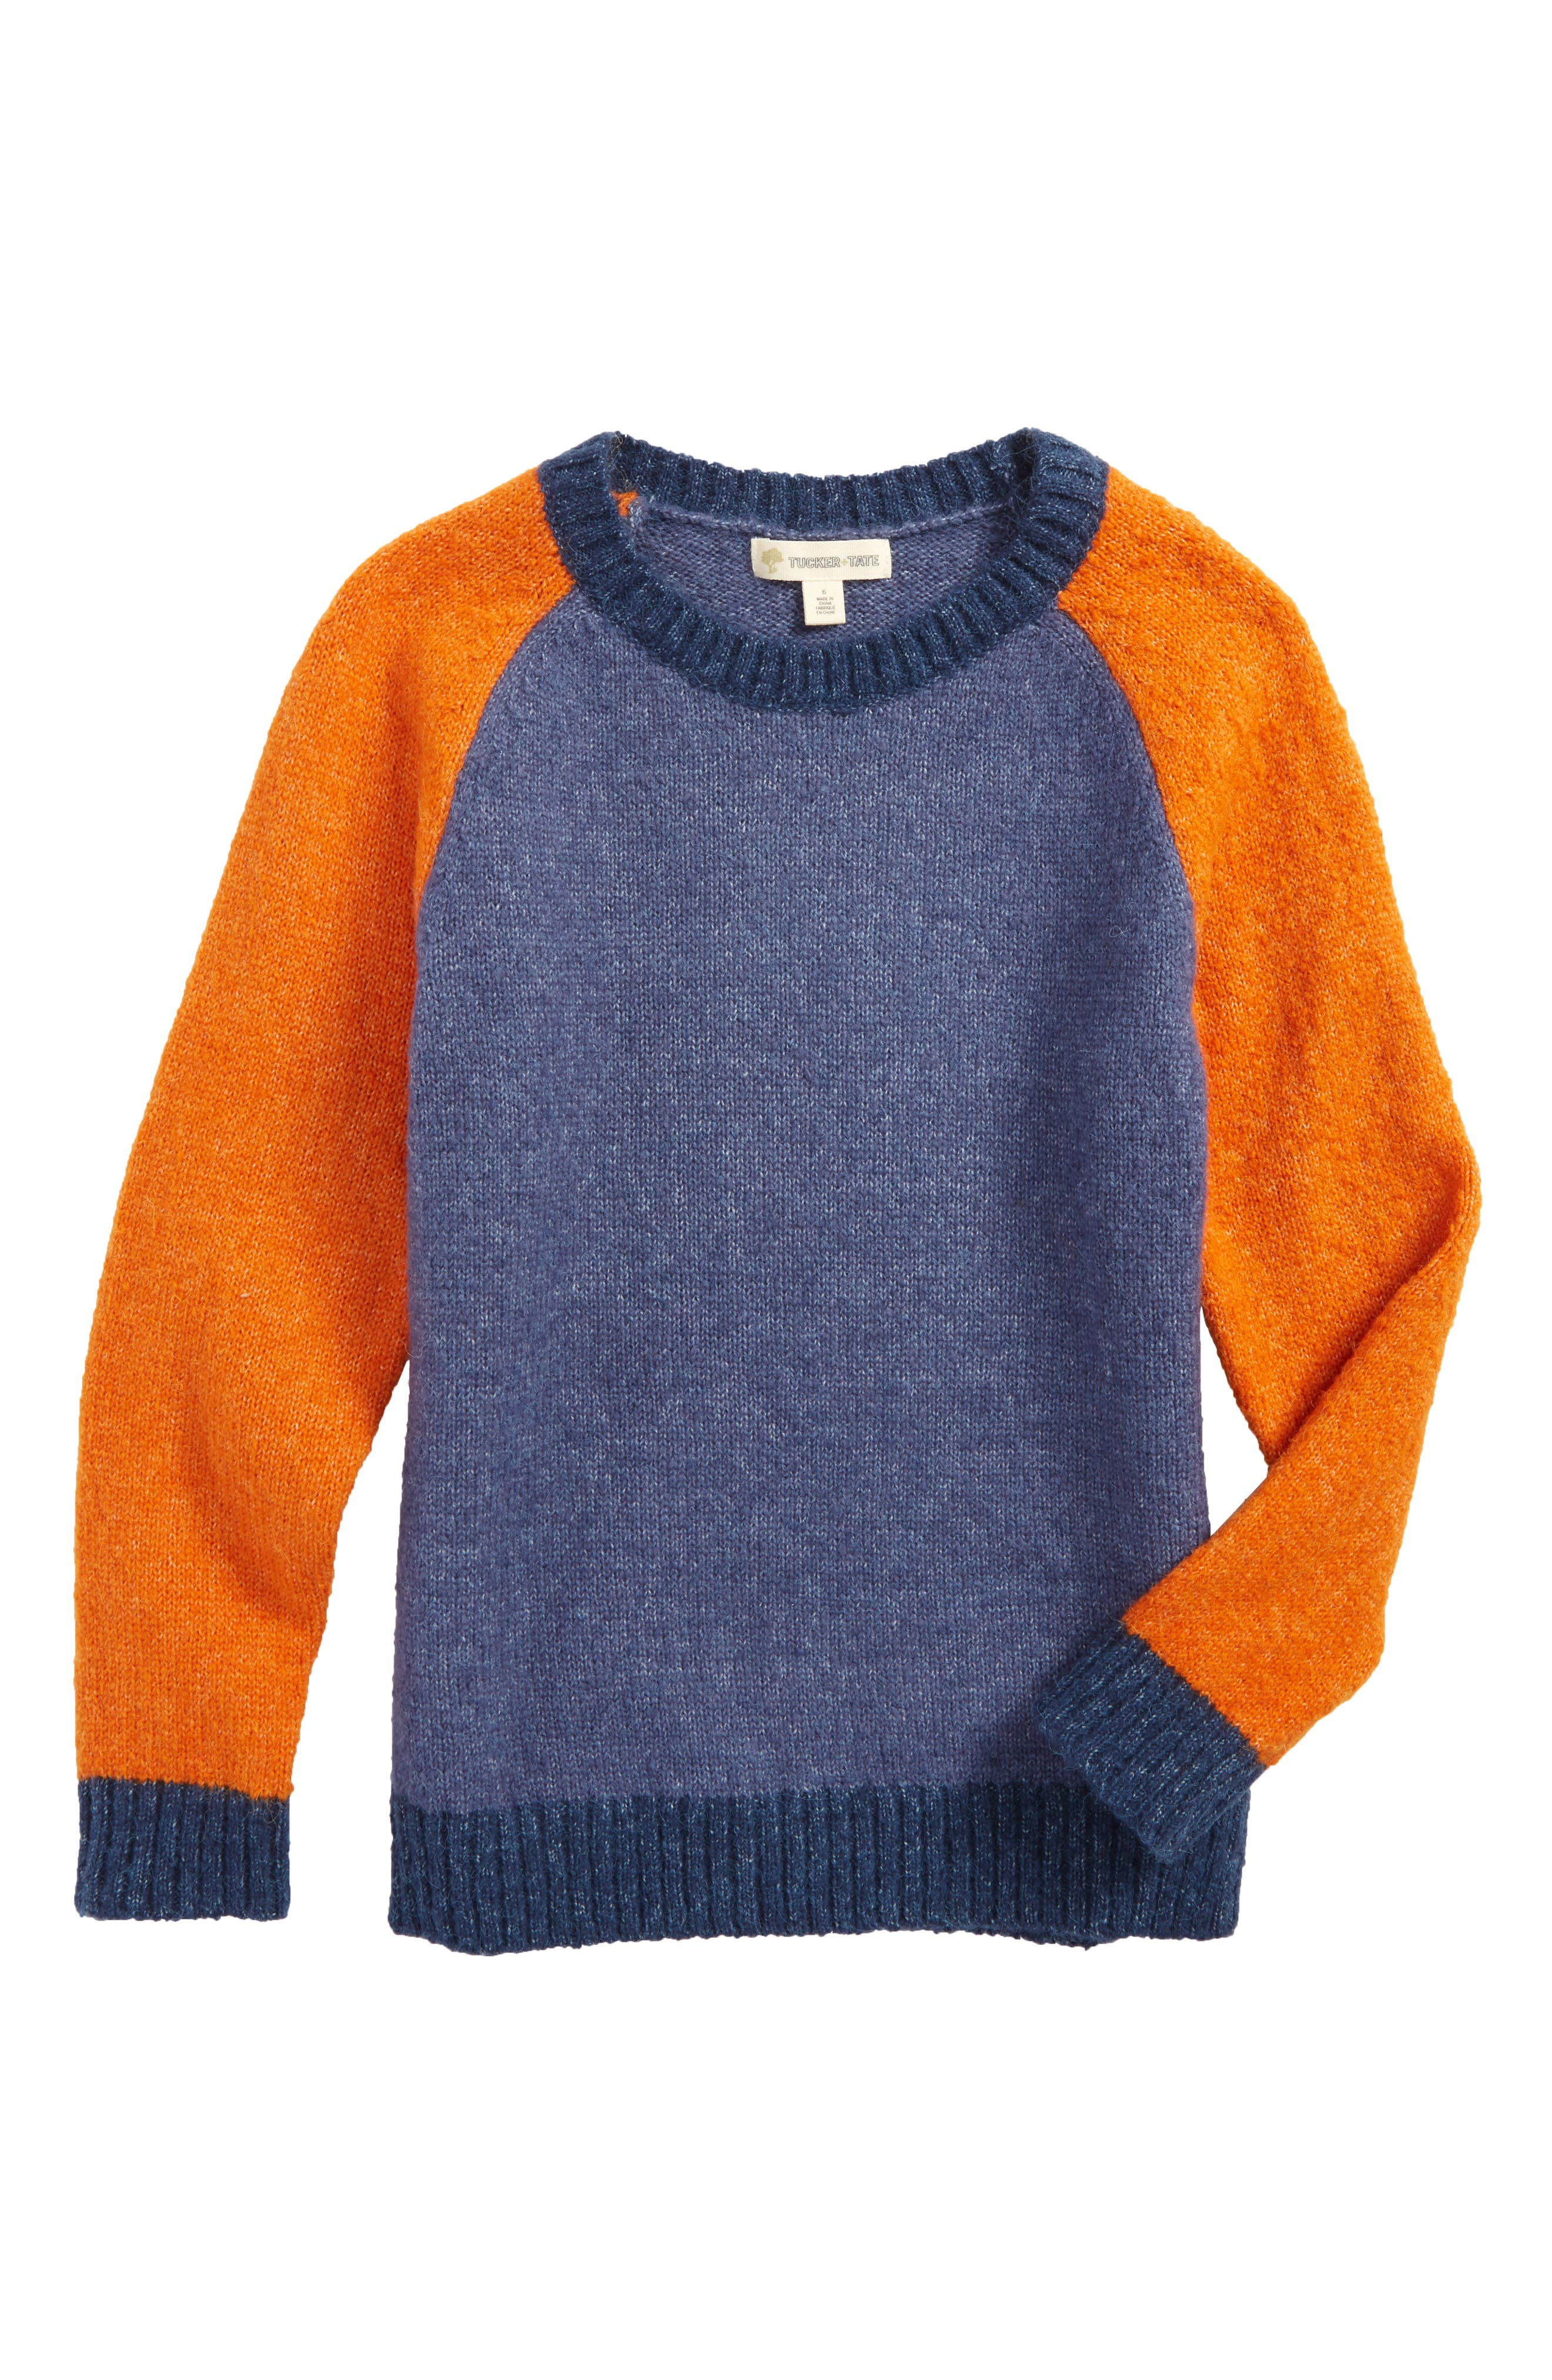 Alternate Image 1 Selected - Tucker + Tate Colorblock Sweater (Toddler Boys & Little Boys)